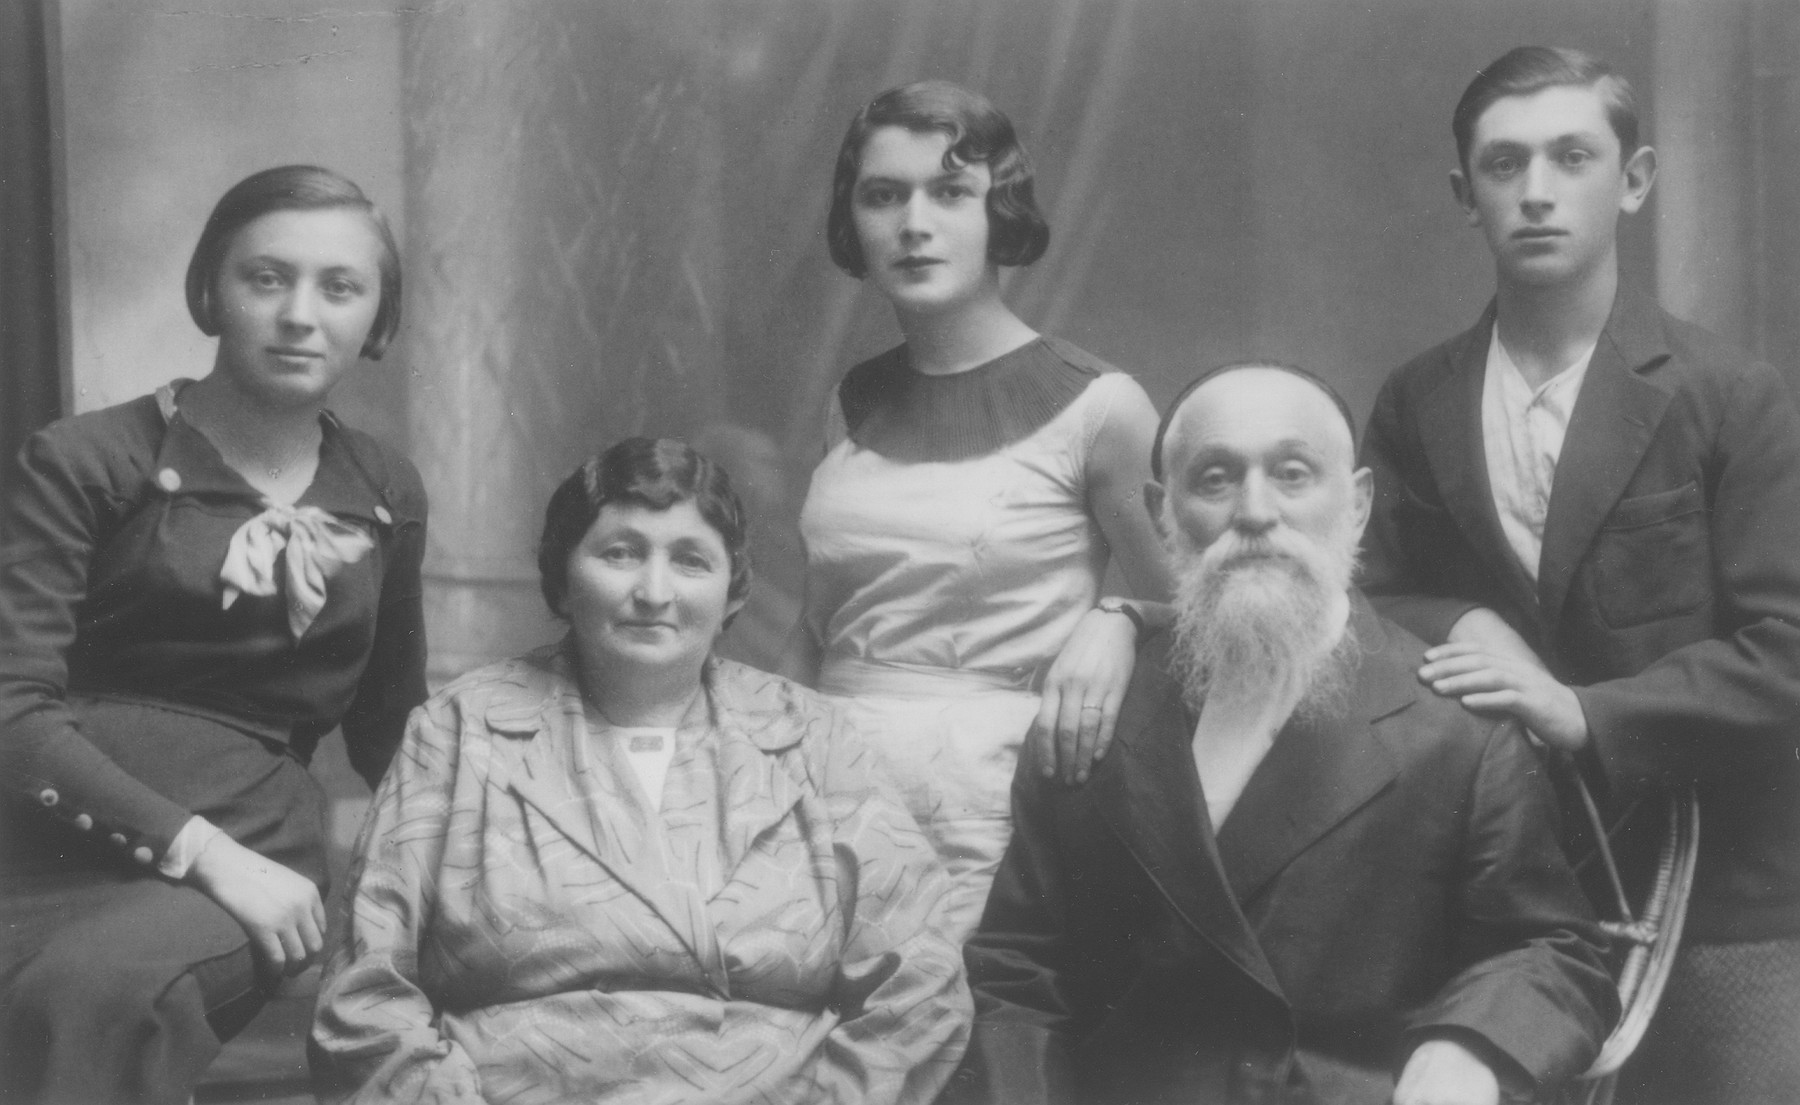 Portrait of the Cymbler famIly in Bedzin.  Pictured from left to right are: Rachel, Rajzla, Chaja Itla. Herszlik, and Jacob Cymbler.